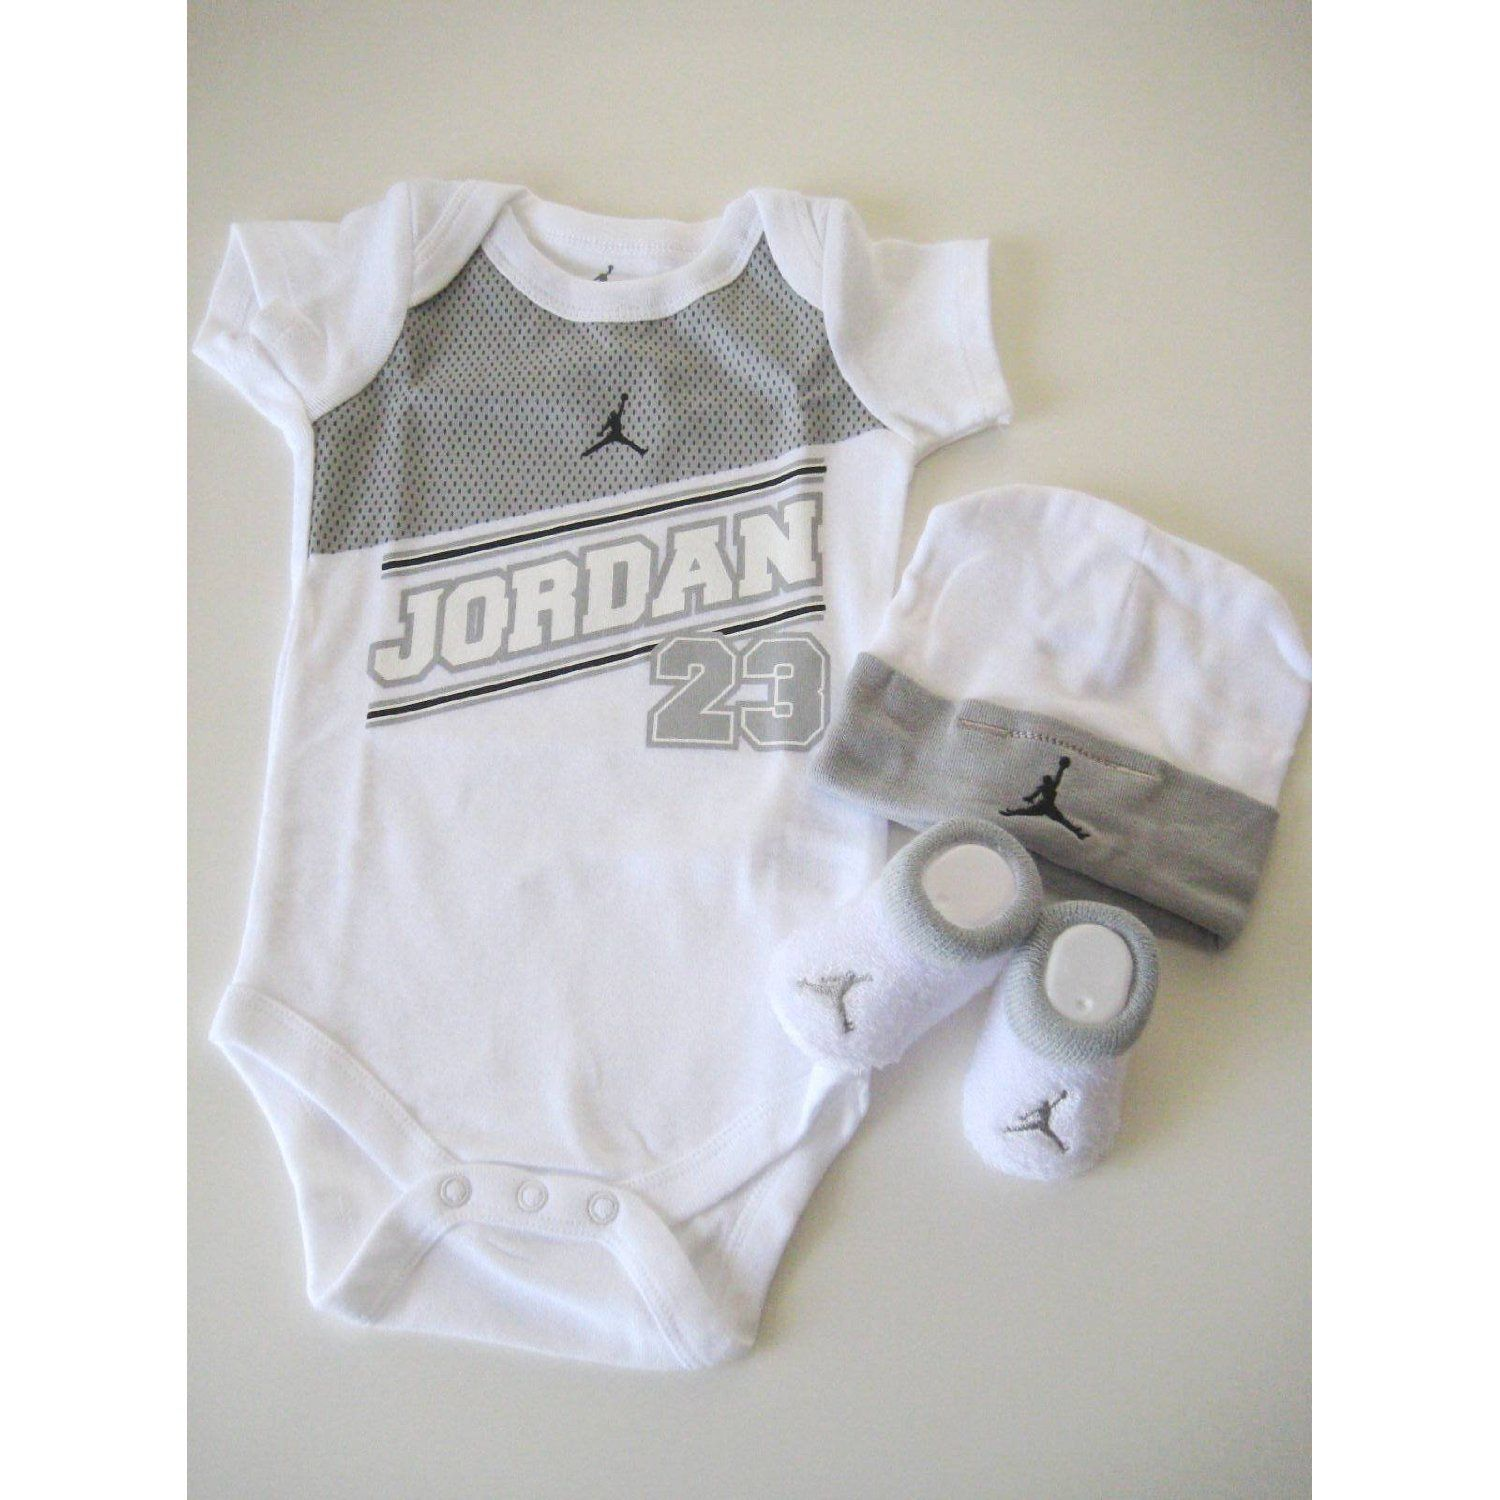 Jordan Outfit 1 Baby toddler boy Pinterest